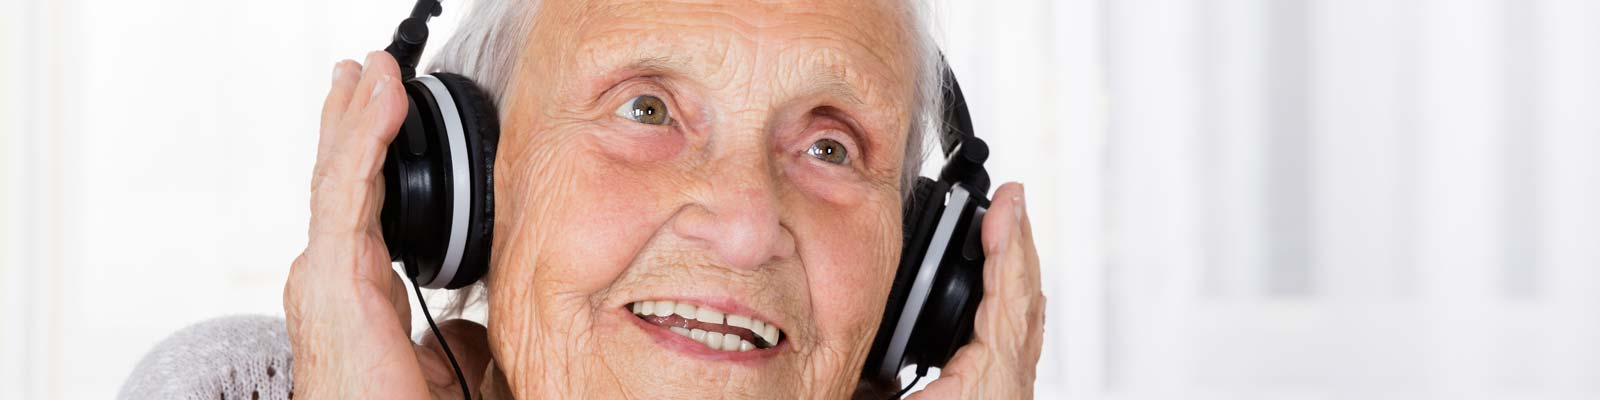 Alzheimer's patient enjoying music - Browse the Alzheimer's Store - The best simple music players and easy to use music related products for those with Alzheimer's, Dementia, Stroke, Memory Loss and for Senior Care